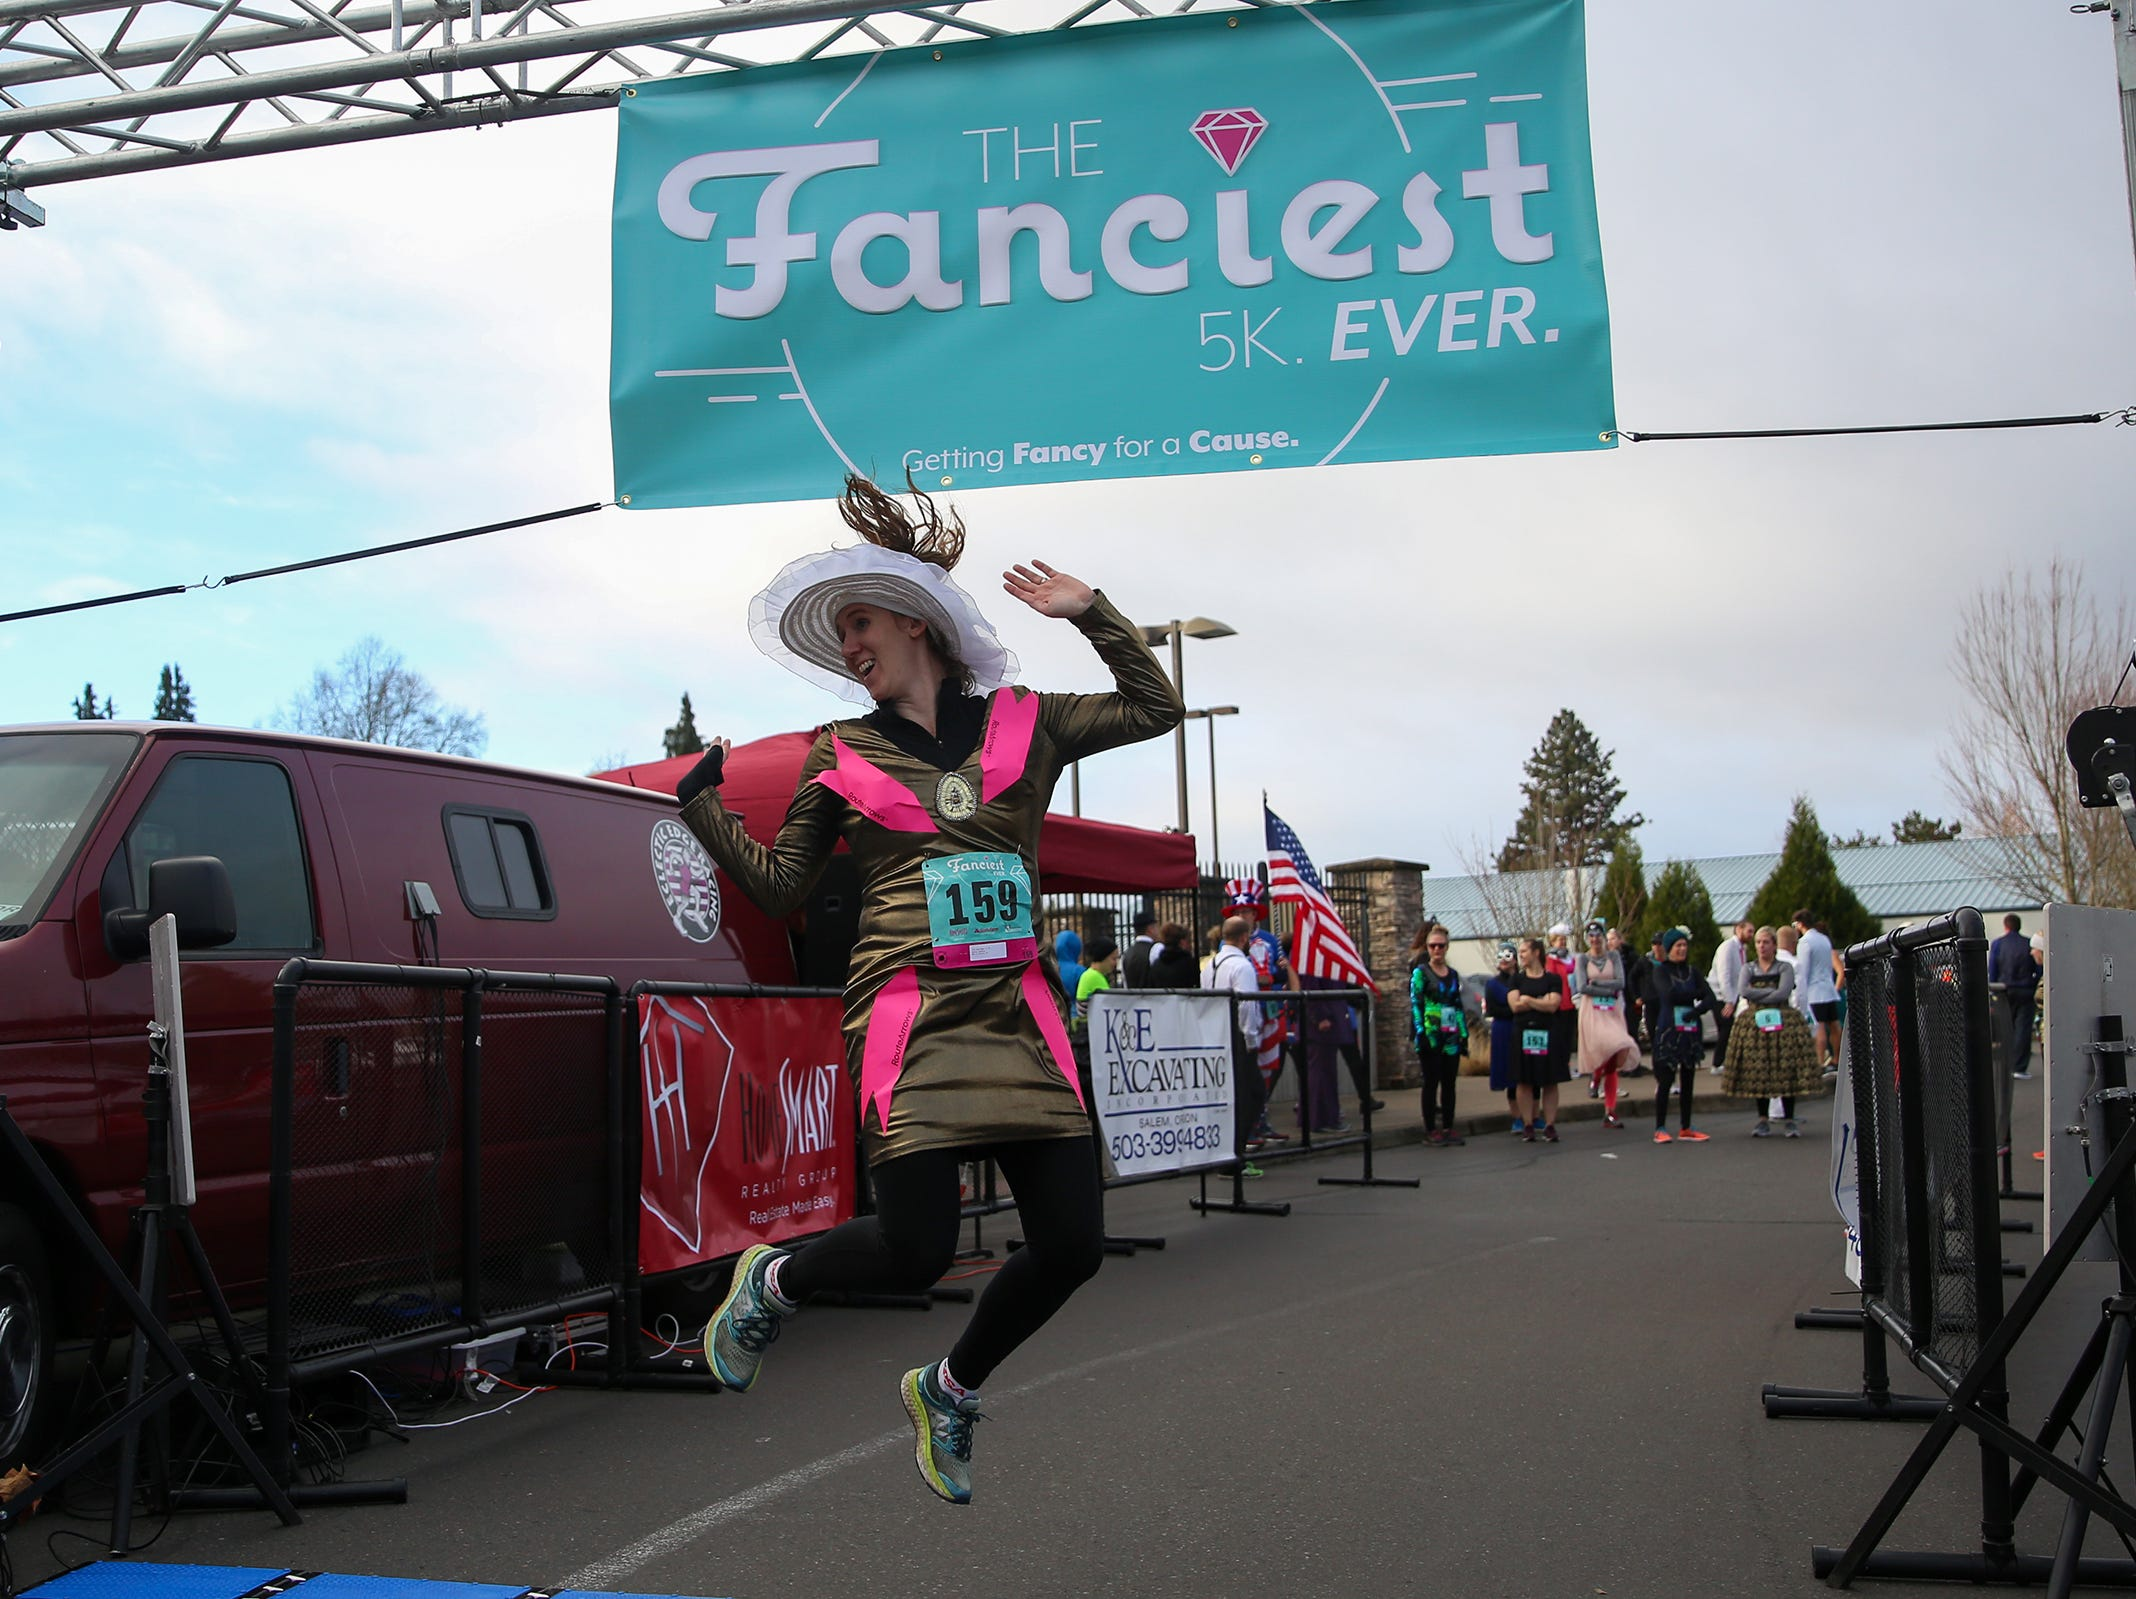 Angela Watts, race director, jumps for a photo before The Fanciest 5K. Ever. in Salem on Saturday, Dec. 29. All of the money raised will go directly to advocacy for sex-trafficking survivors in the mid-Willamette Valley.